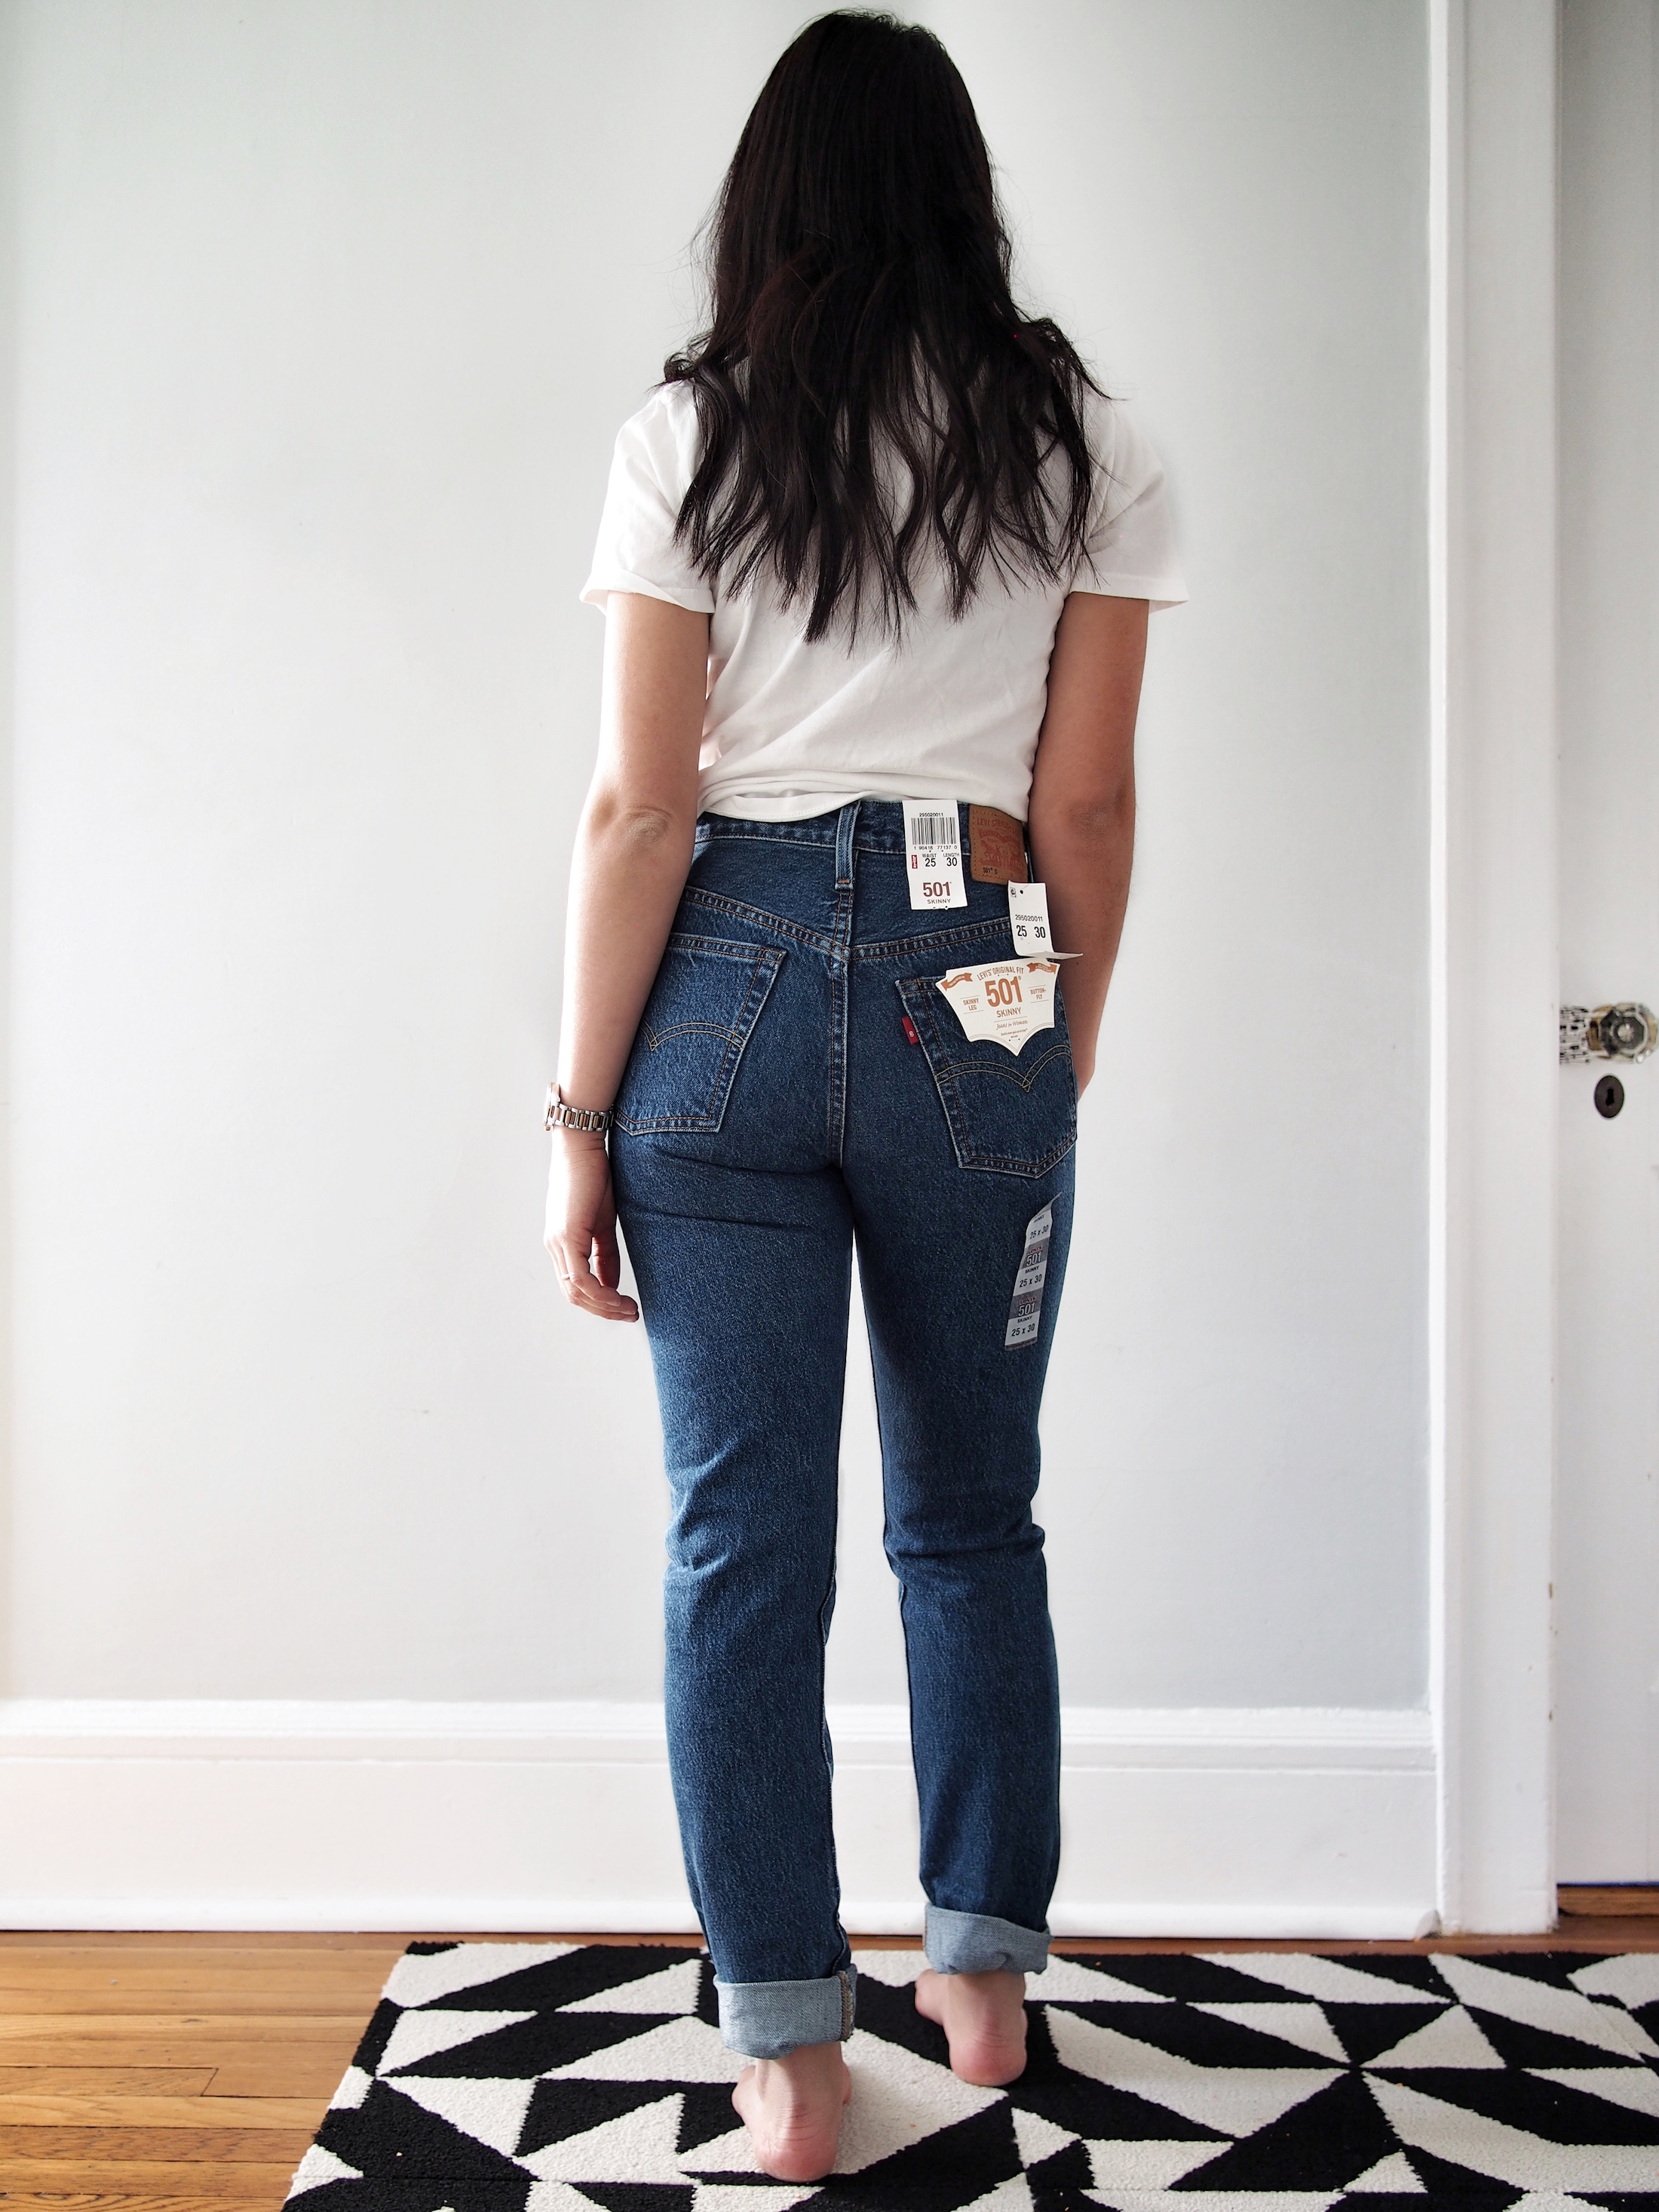 e05ca56e 501 skinny selvedge (Pop Rock) $79.98 on sale –There was something about  this wash that made it feel so vintage. I feel like this is one of those  pairs that ...